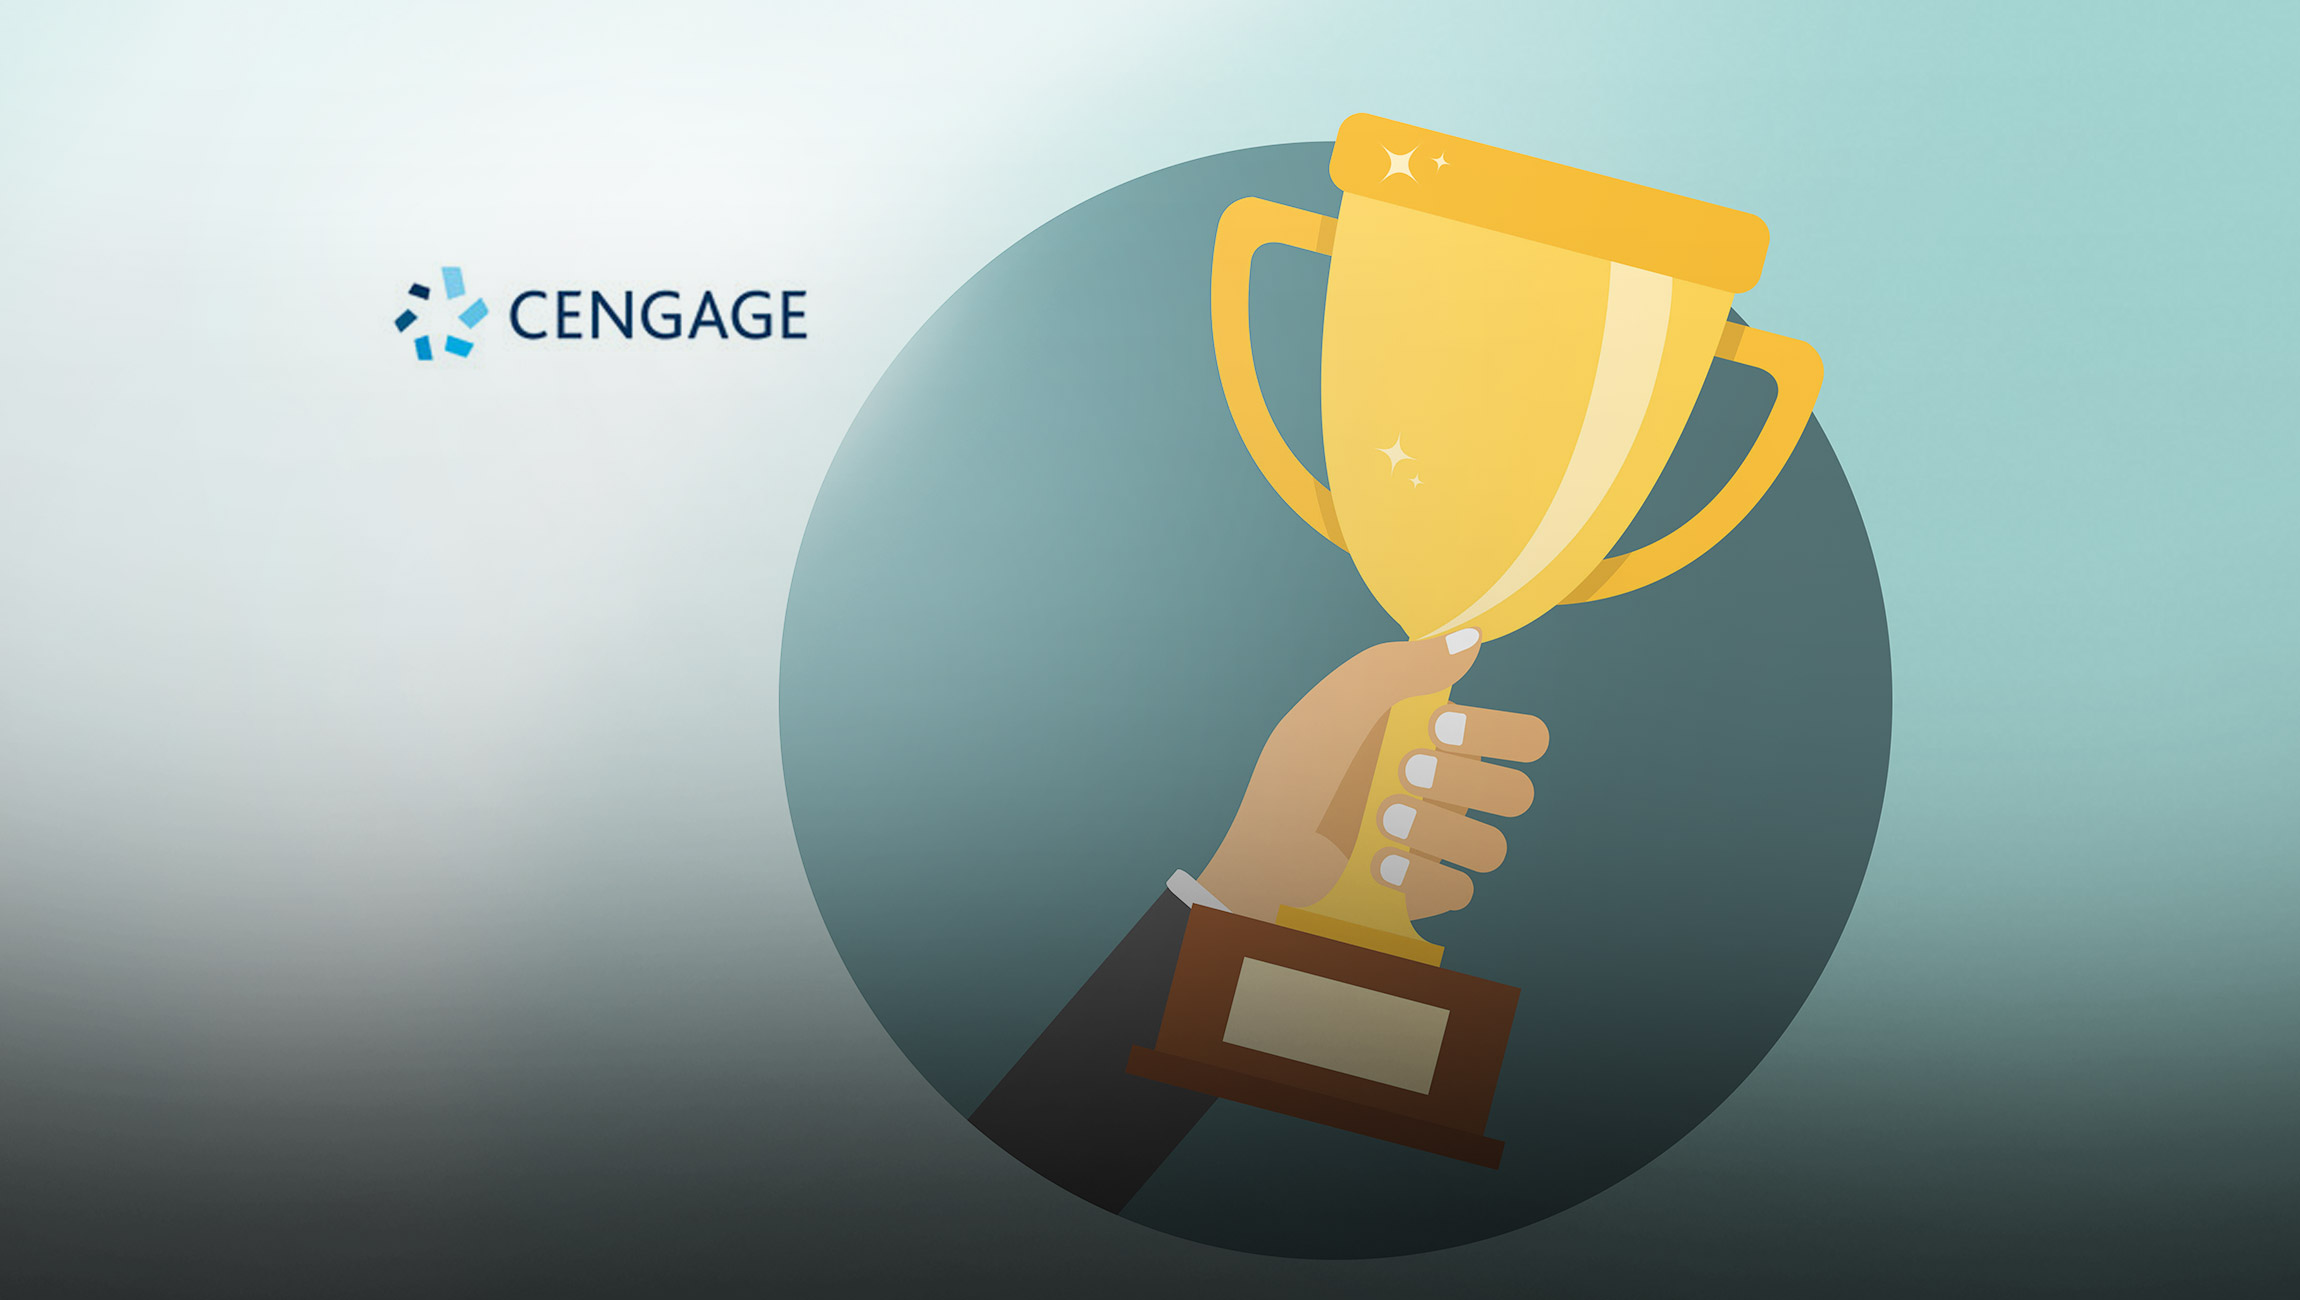 Cengage Announces Expansion of Online Skills Business to Meet Growing Demand for Workforce Development and Reskilling